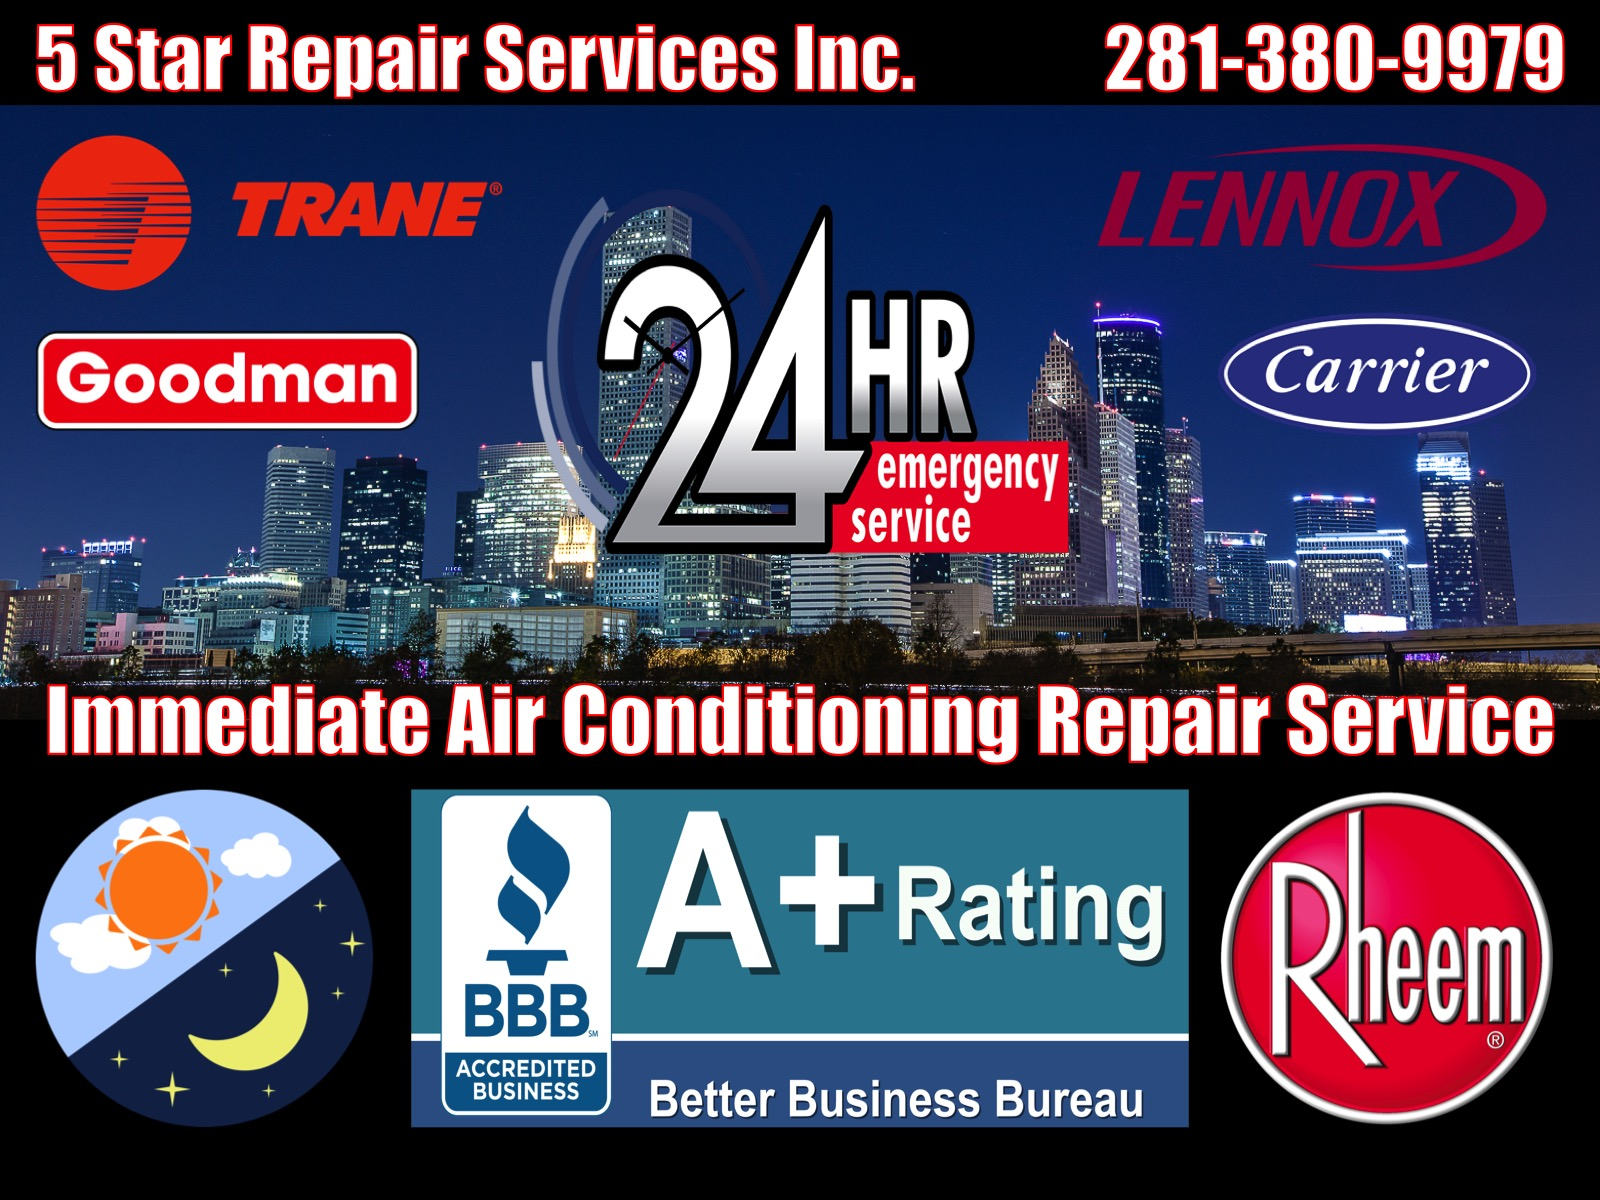 24 Hour Emergency Air Conditioning AC HVAC Furnace Condition Repair Service Spring 77382 77380 77379 77373 77383 77386 77388 77389 77391 77393 Central Cooling Unit System Duct Cleaning Maintenance